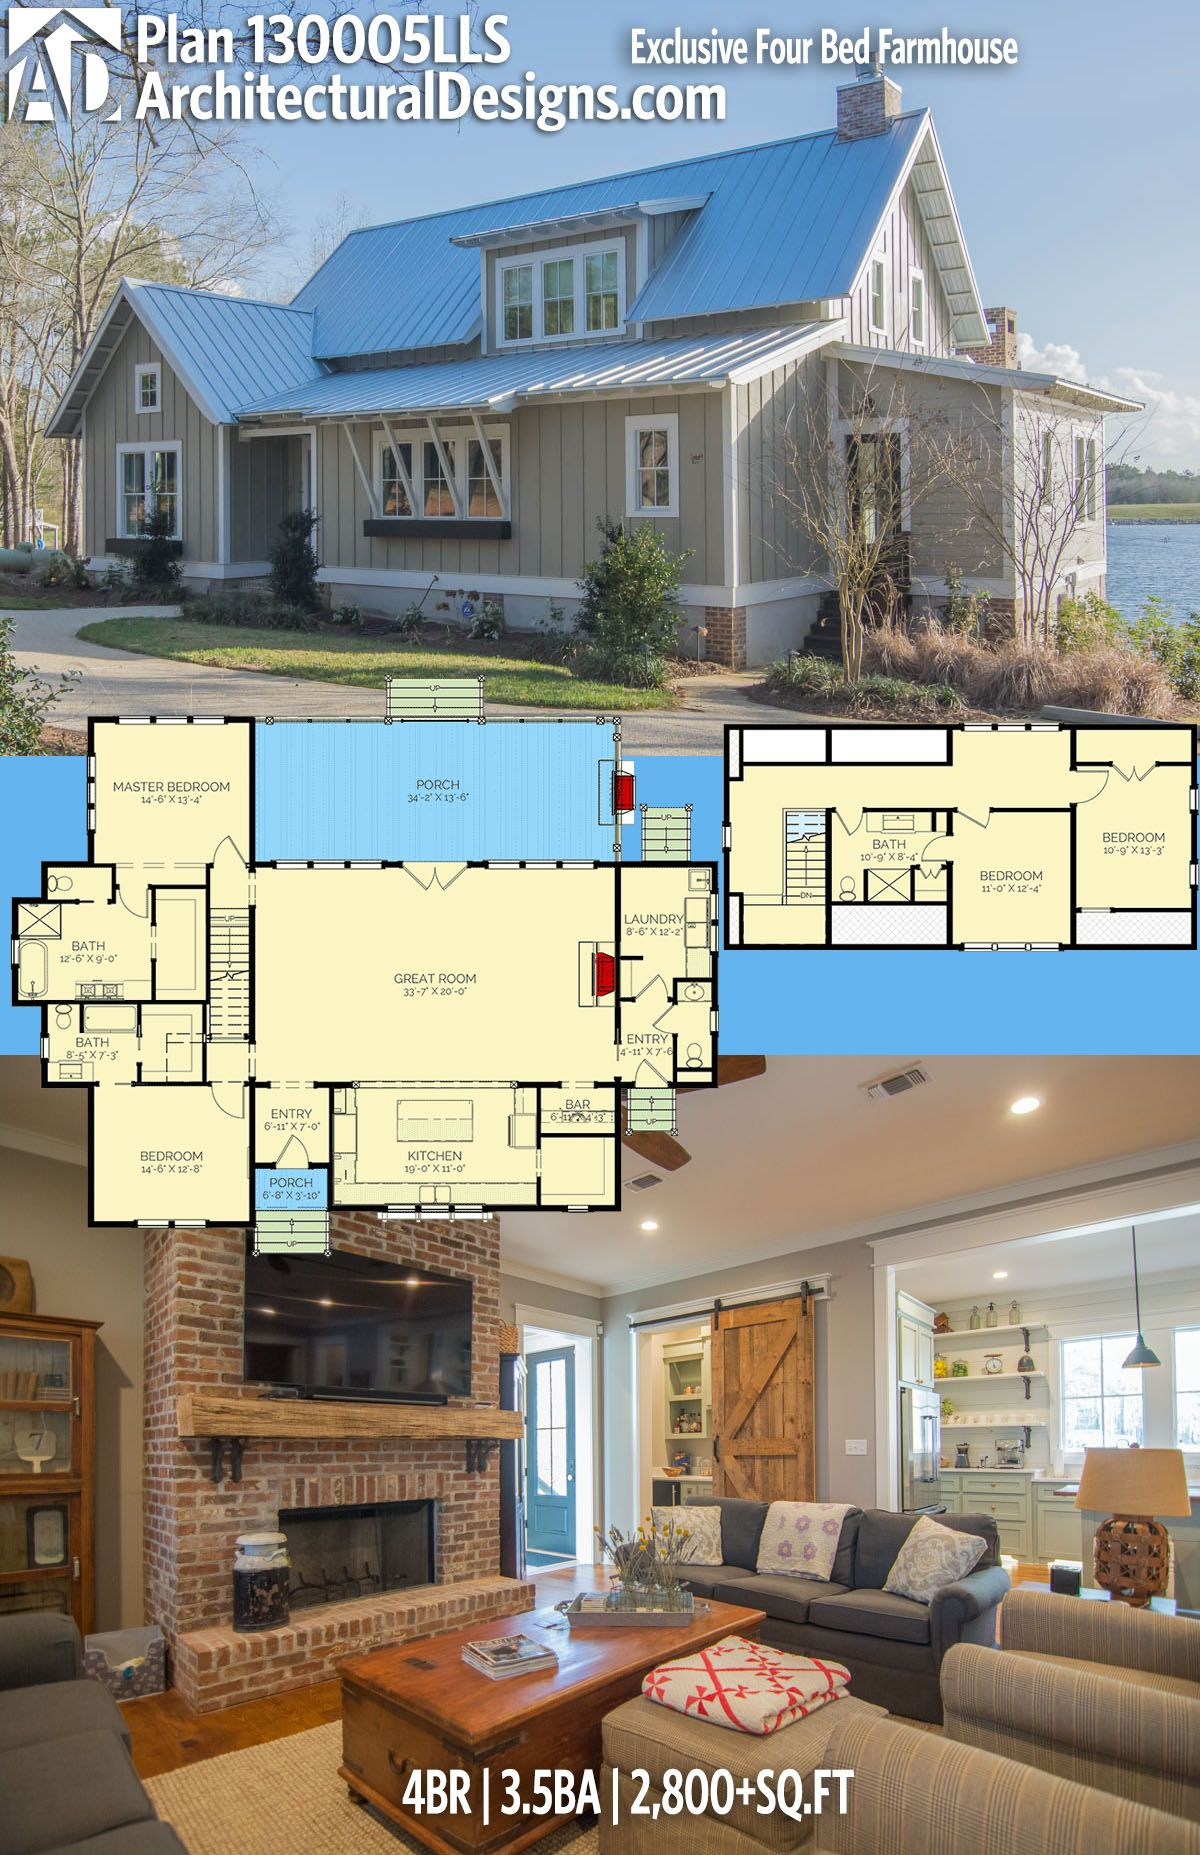 Plan LLS Exclusive Four Bed Farmhouse in For the Home